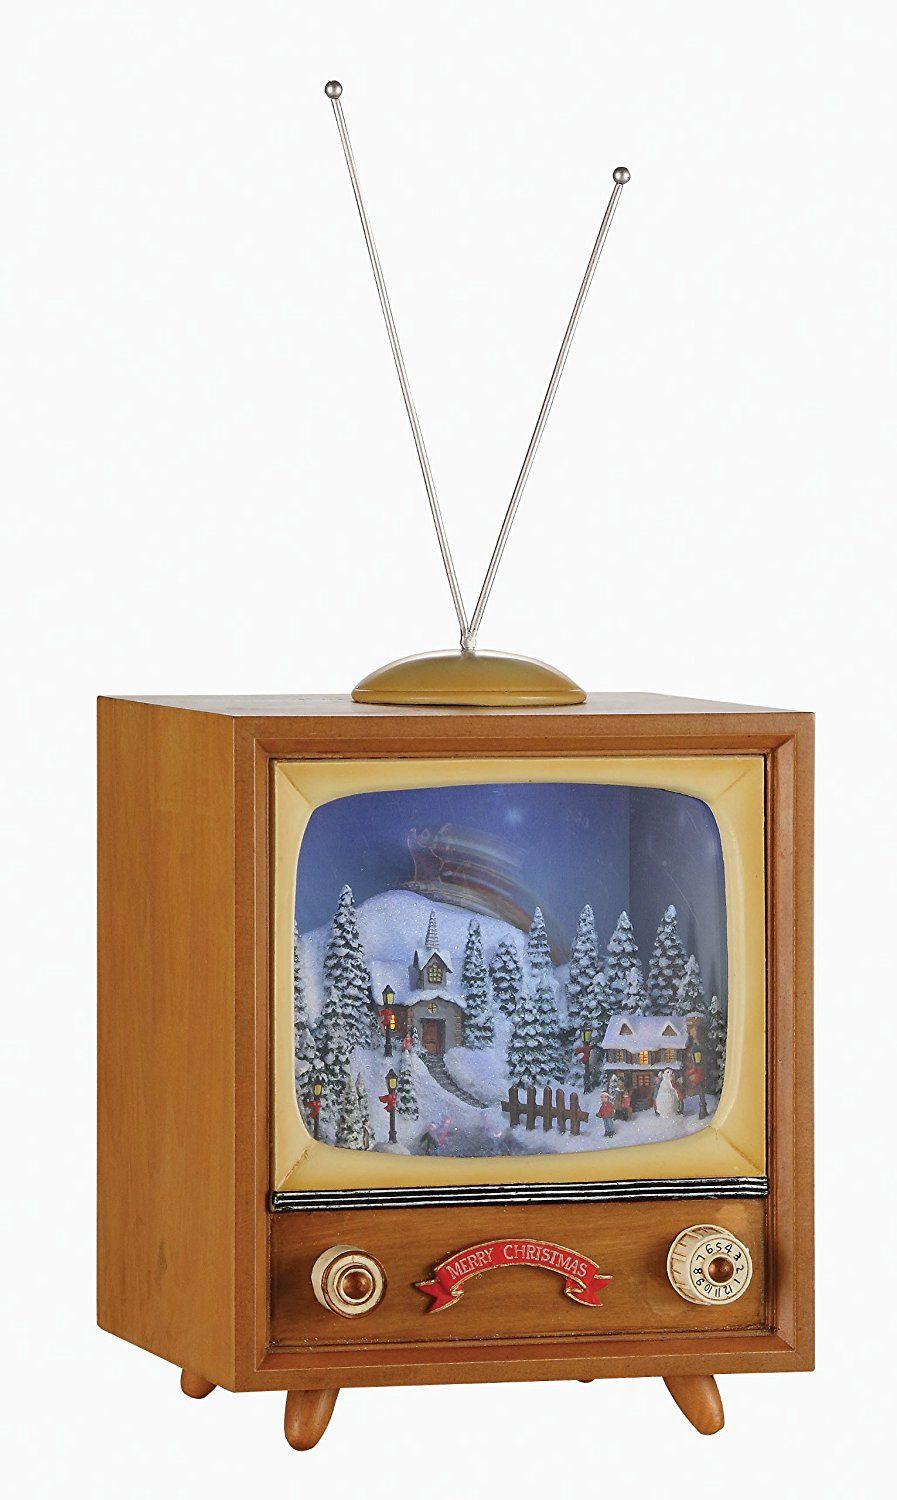 amazoncom lighted musical animated retro tv set decoration featuring vintage outdoor snow winter scene with ice skaters and rotating santa